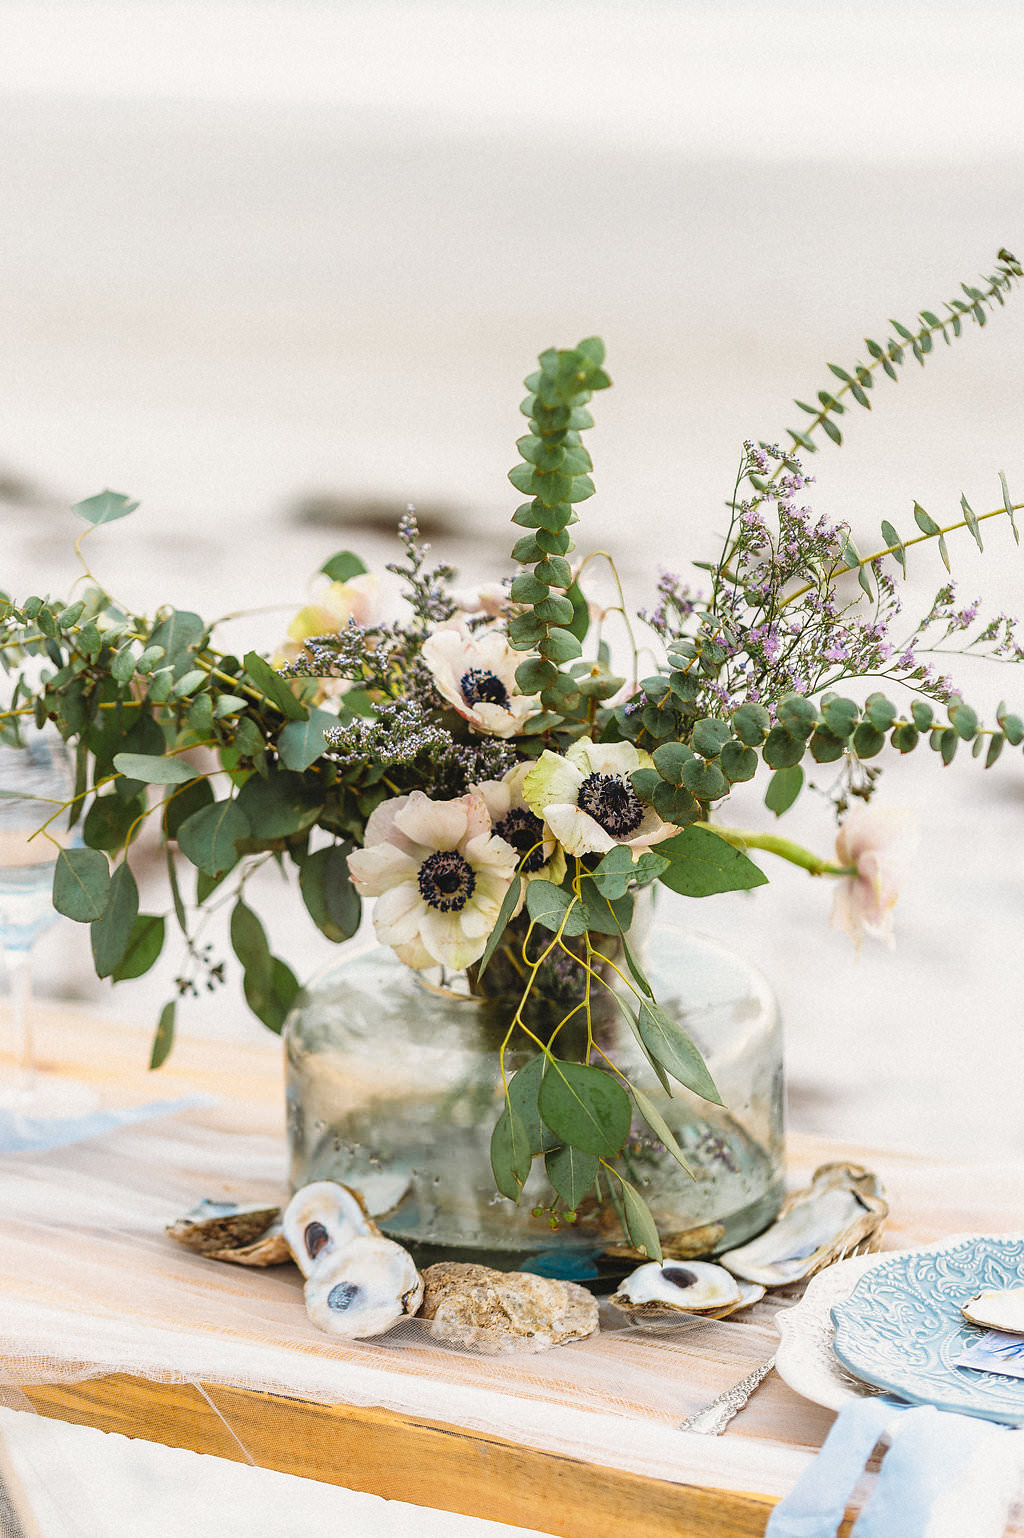 Waterfront, Coastal St. Pete Beach Wedding Reception Decor, Low Glass Vase with Greenery and White Anemone Floral Centerpiece with Oyster Shells